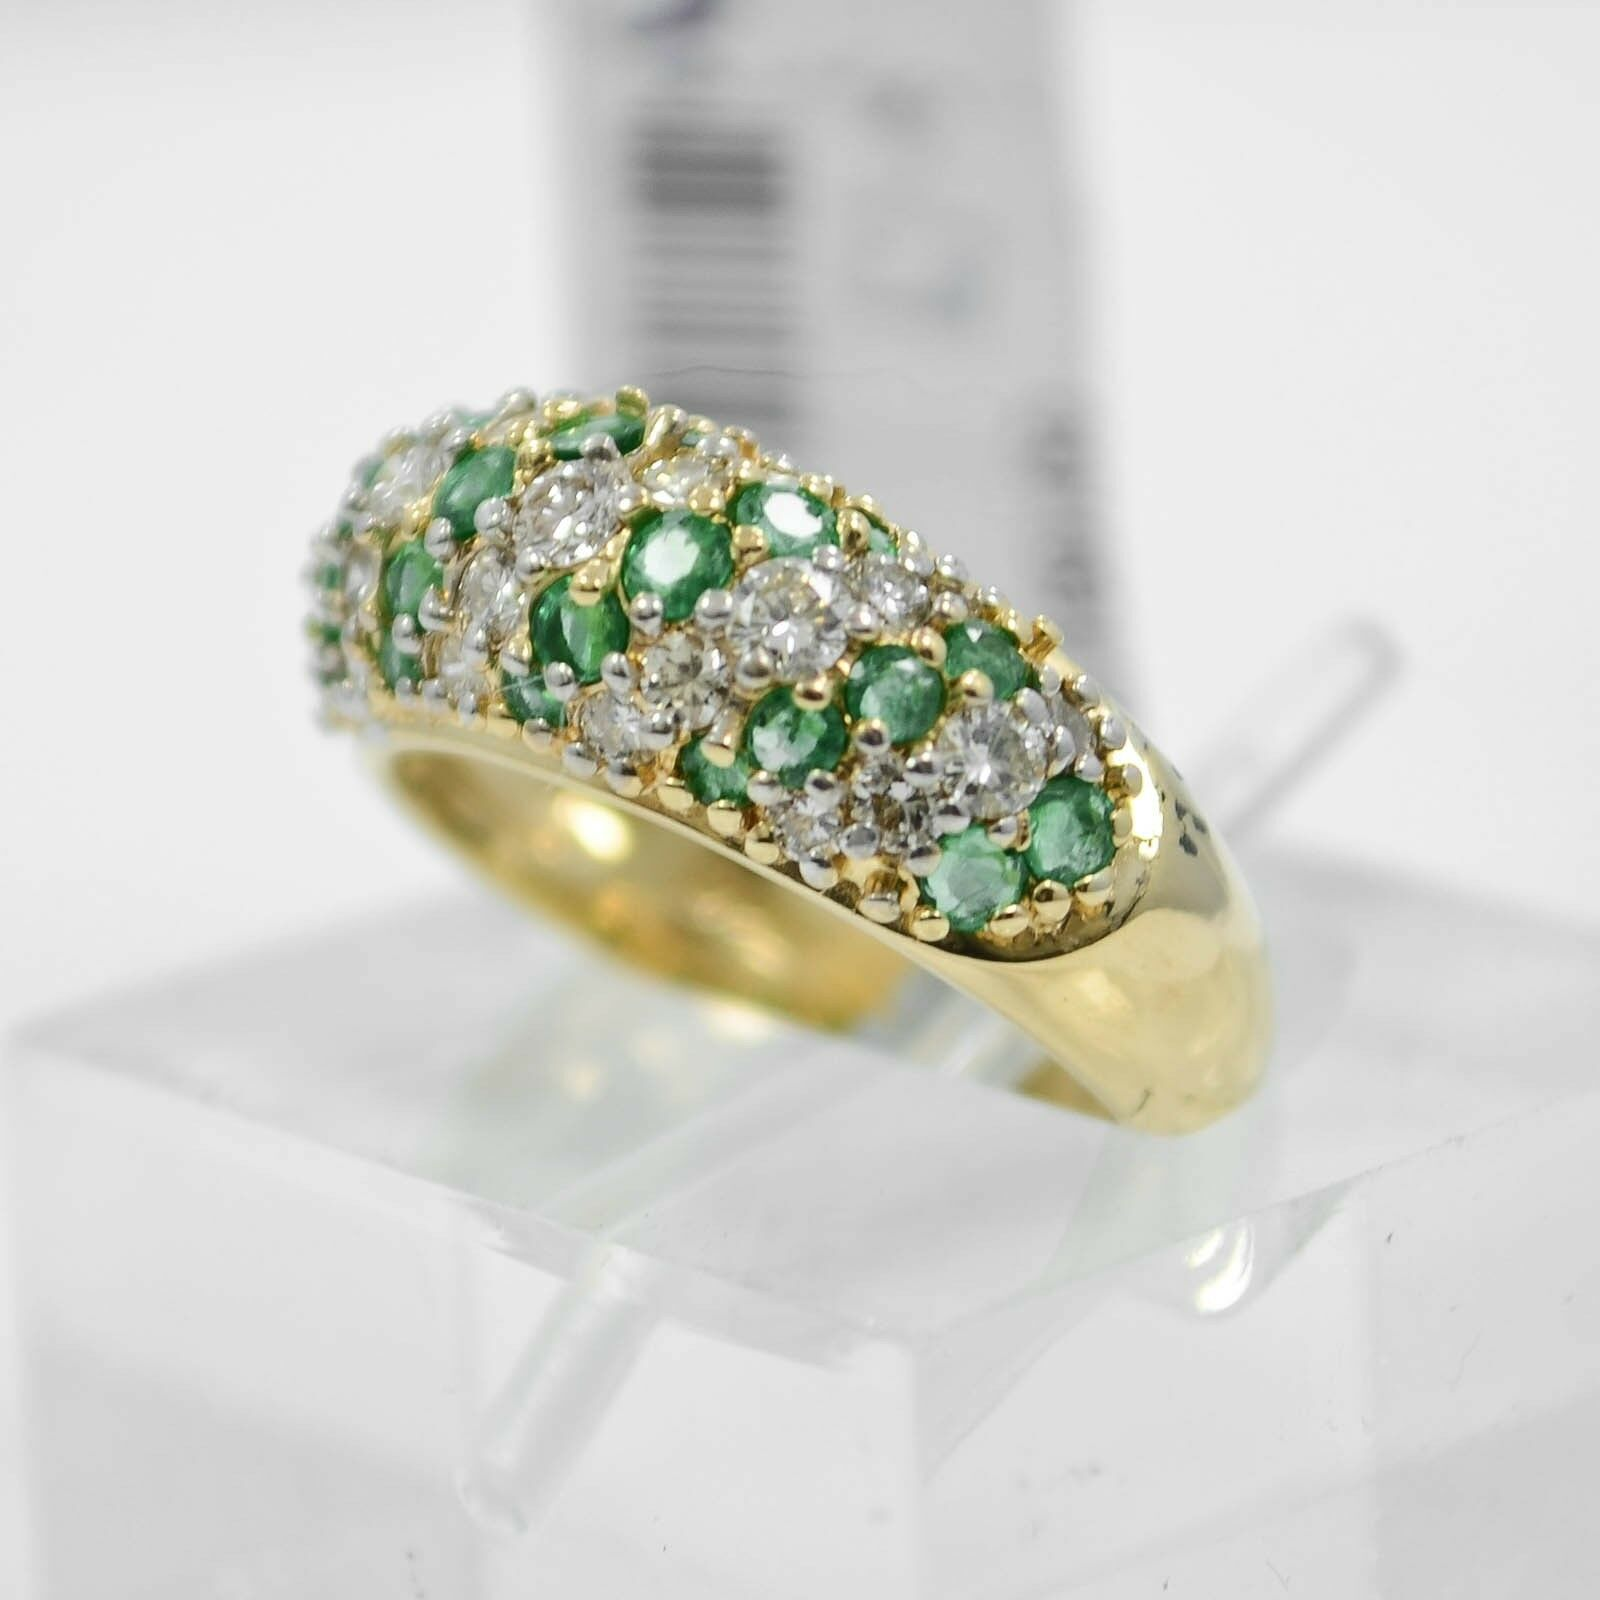 Emerald & Diamonds Ring 14K Yellow gold 1.07Ct in total SIZE 4